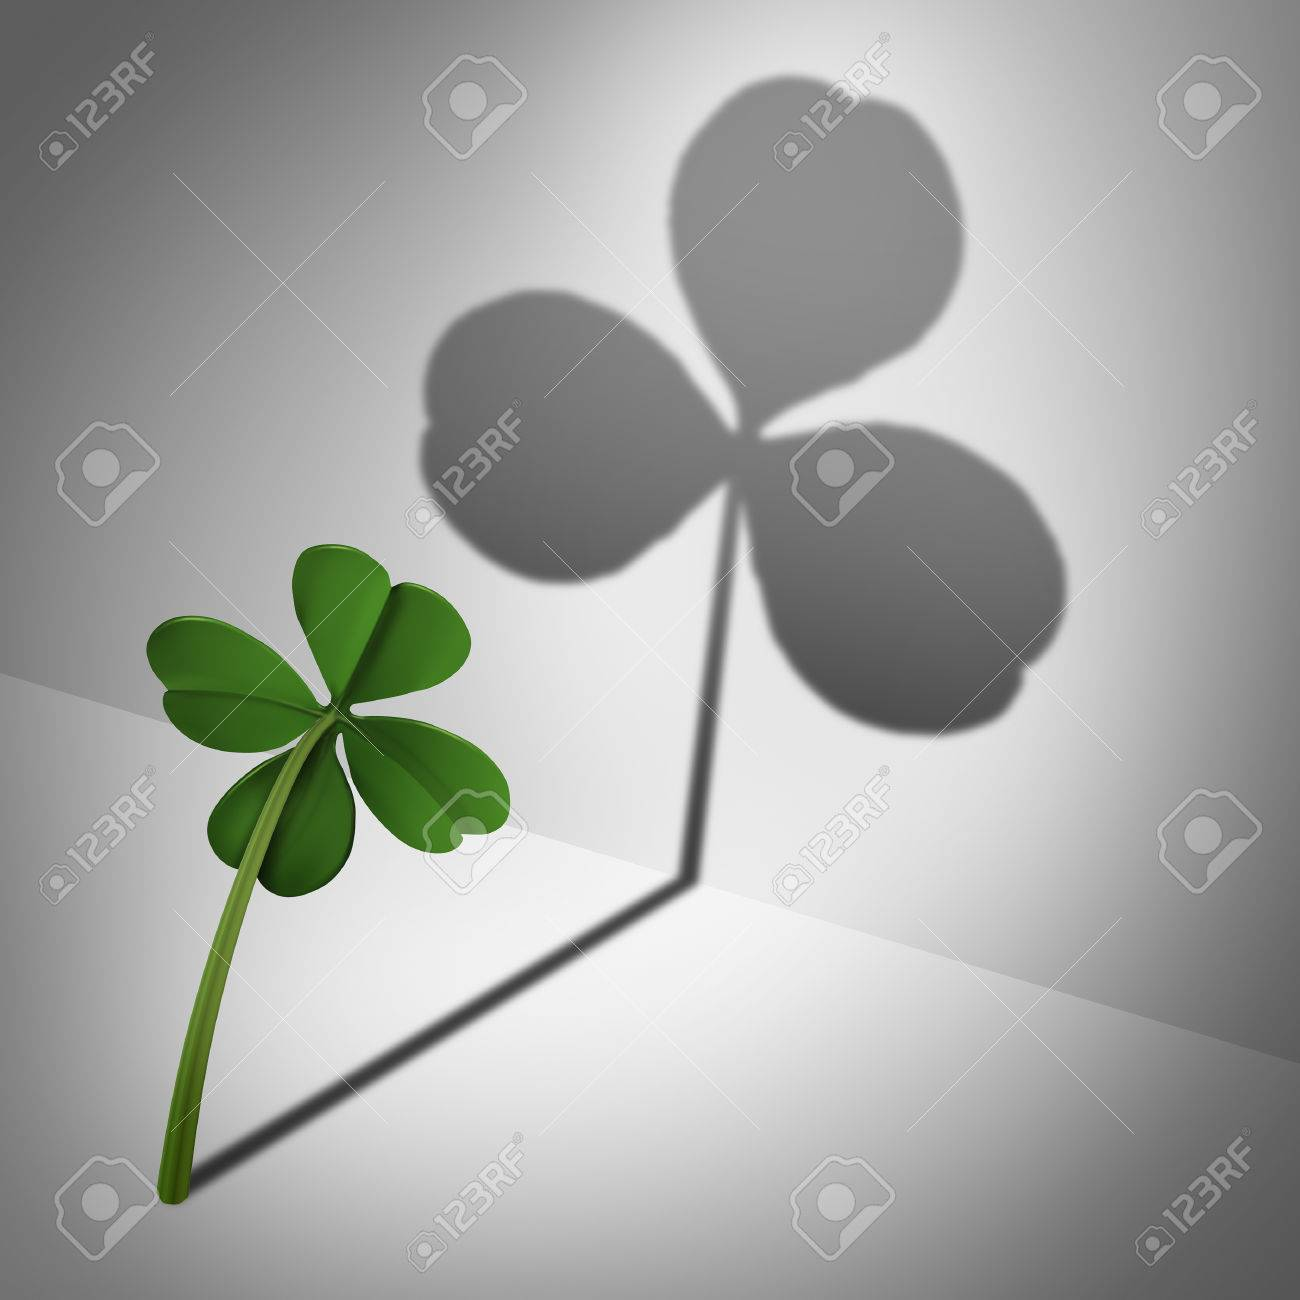 Low self esteem psychological concept as a four leaf clover casting a shadow with only three leaves as a mental health condition of feeling inadequate or negative thinking and low self confidence. Stock Photo - 54085815